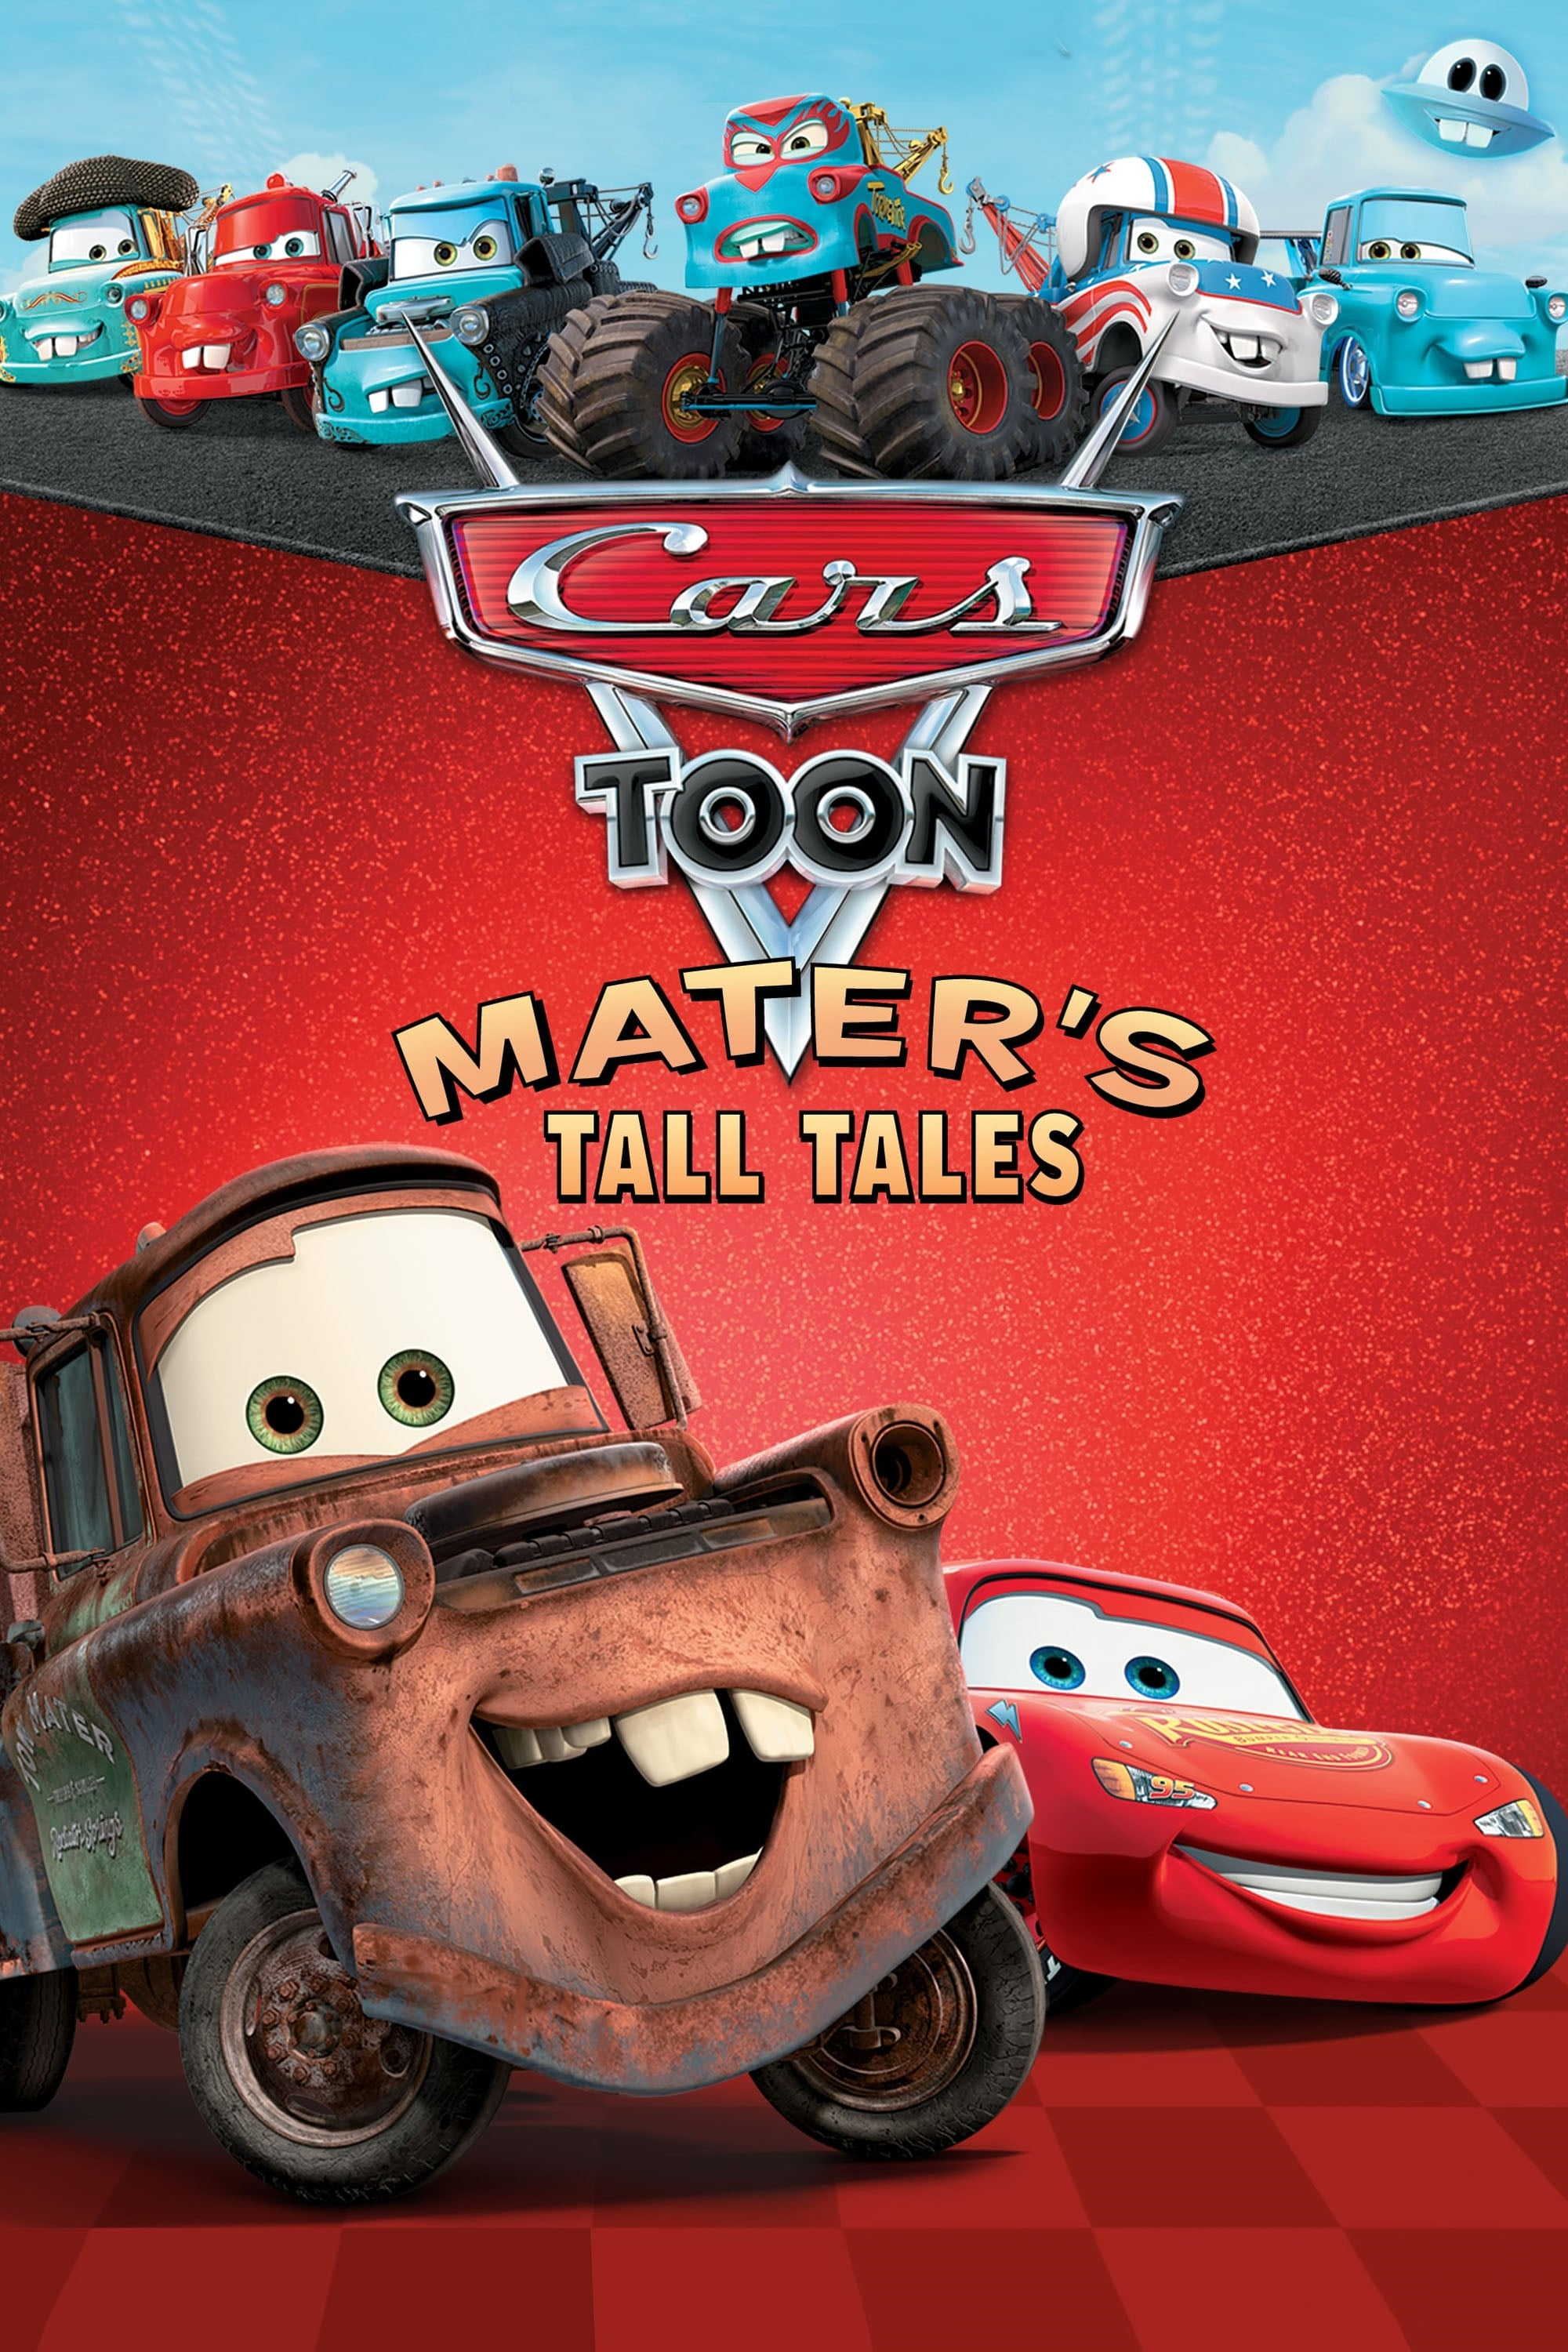 Cars Toon Mater's Tall Tales (2008)